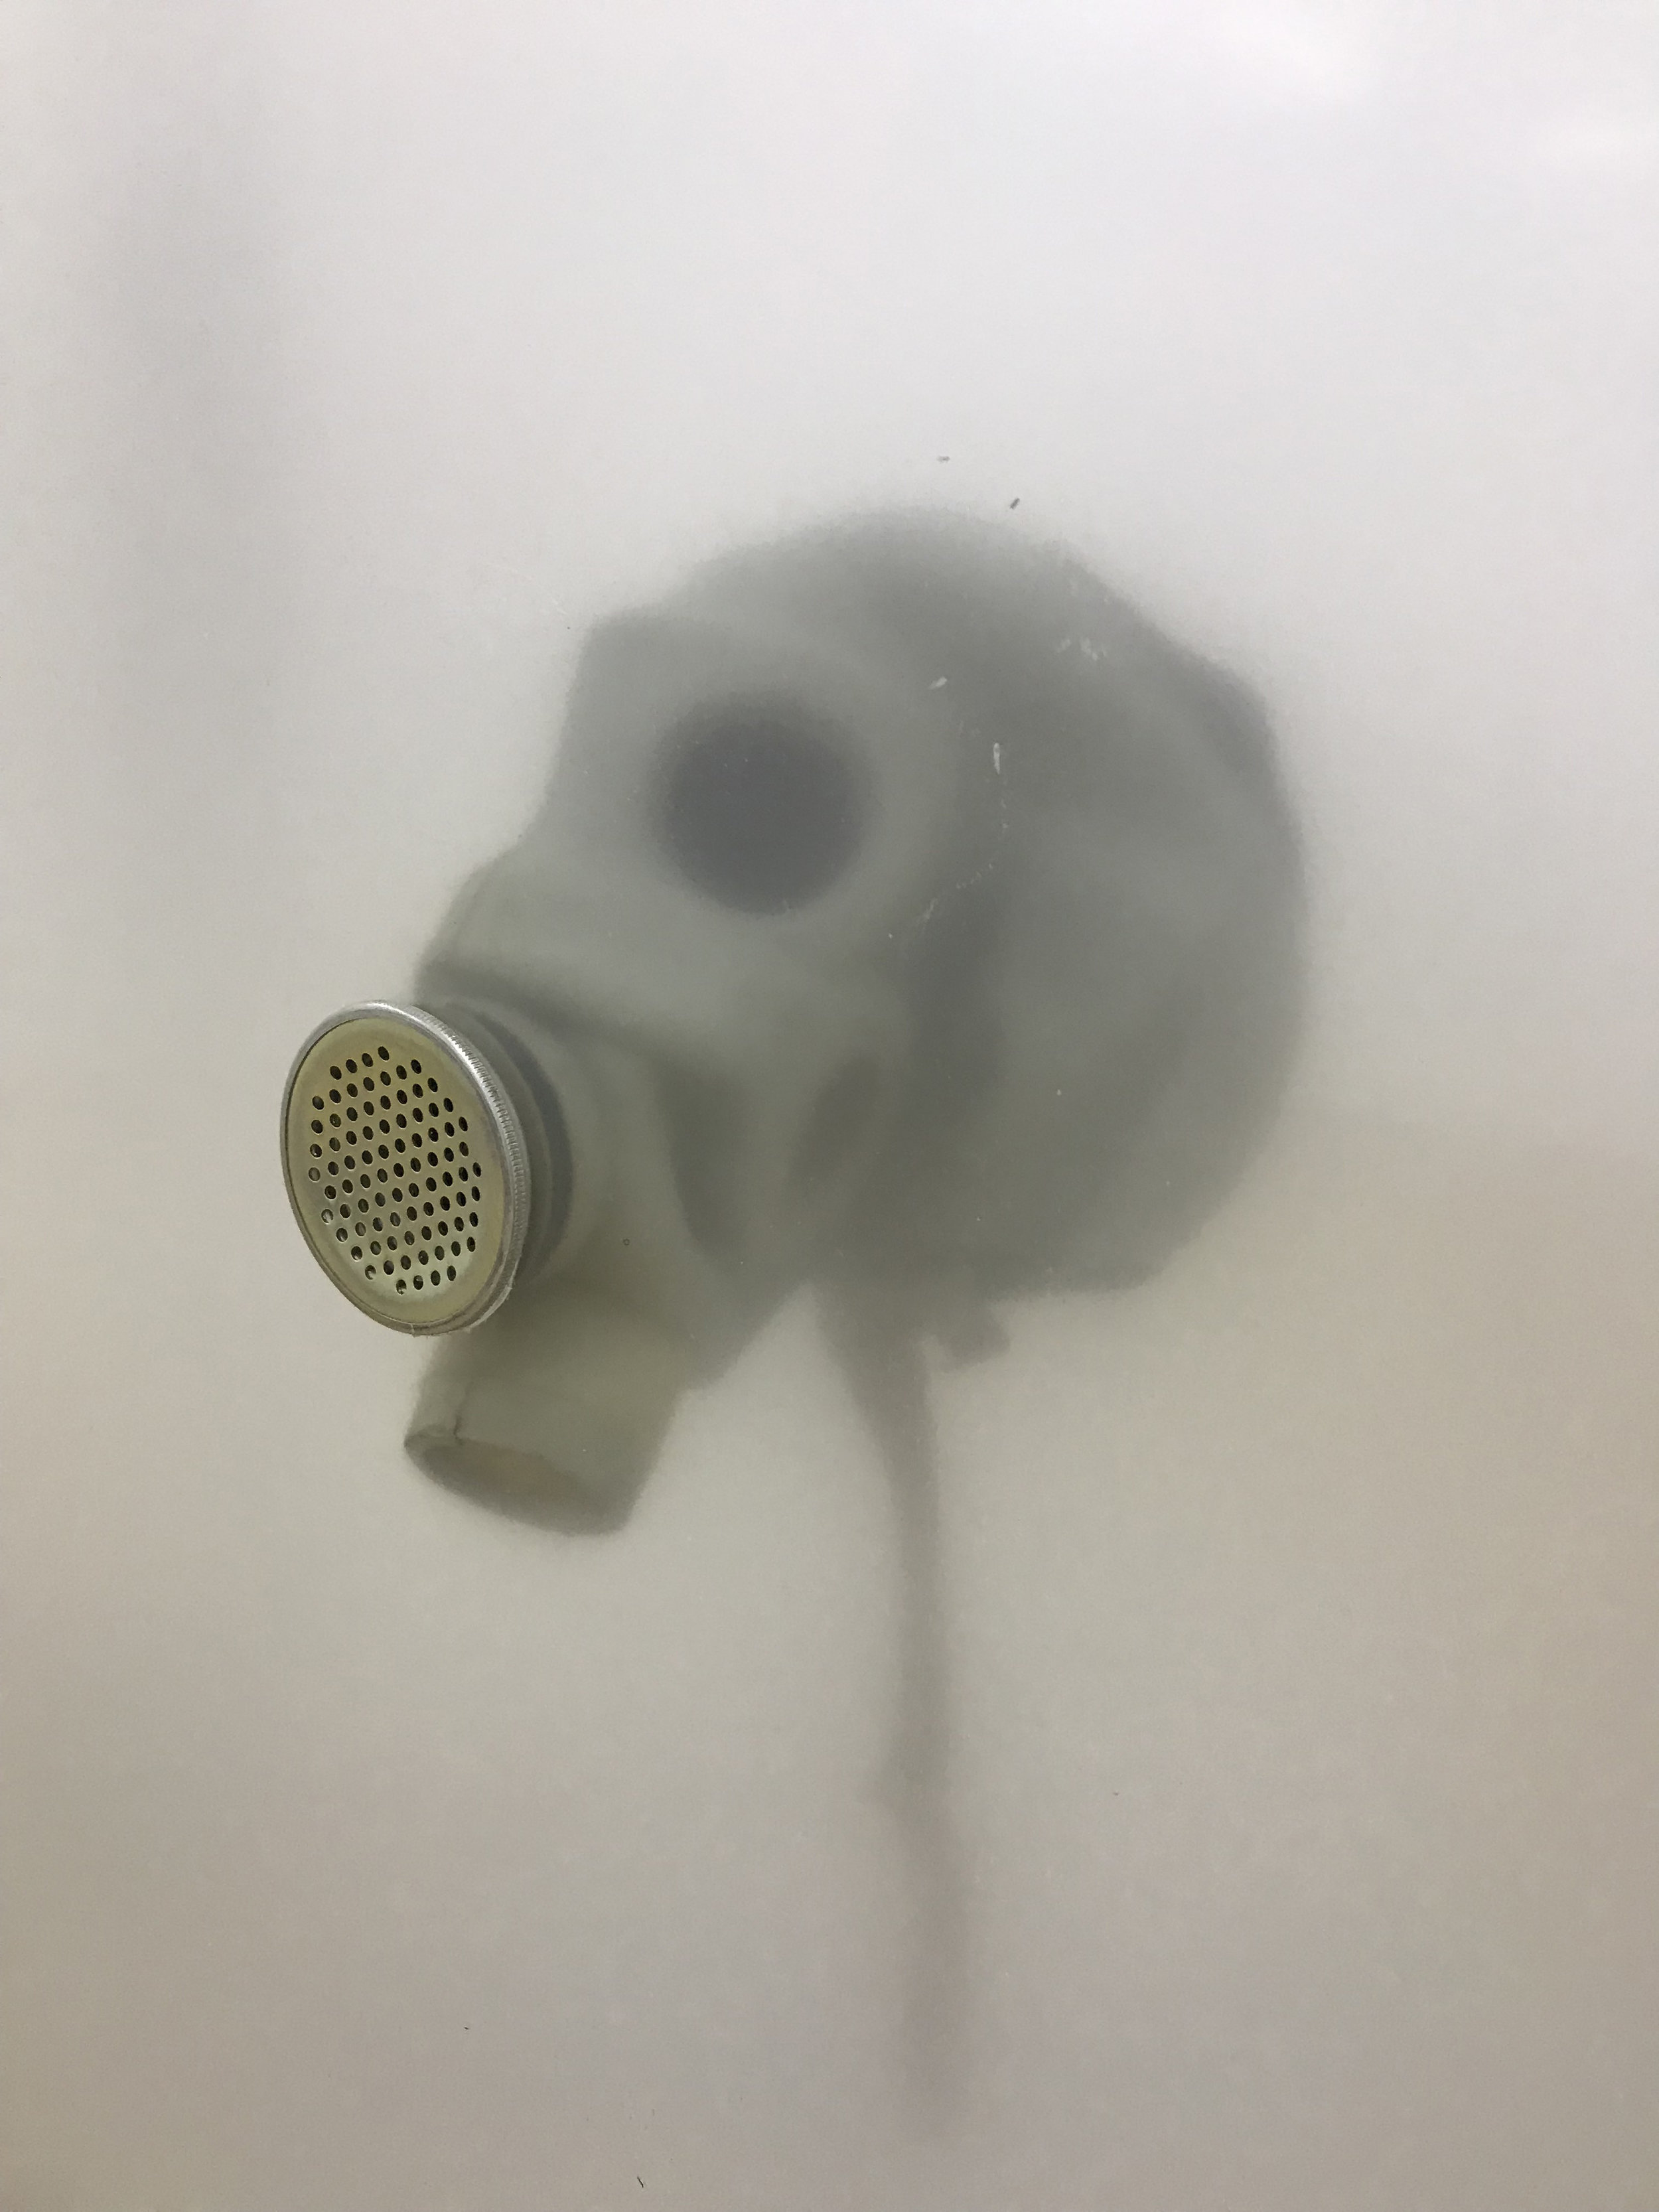 Vladislav Markov  Untitled , 2018 (detail) library shelves, Plexiglas, polyurethane engine cast, gas mask, fog machine,  plastic hose, self-adhesive carpet protector film 84 x 84 x 24 inches (213 x 213 x 61 cm) (VM3)